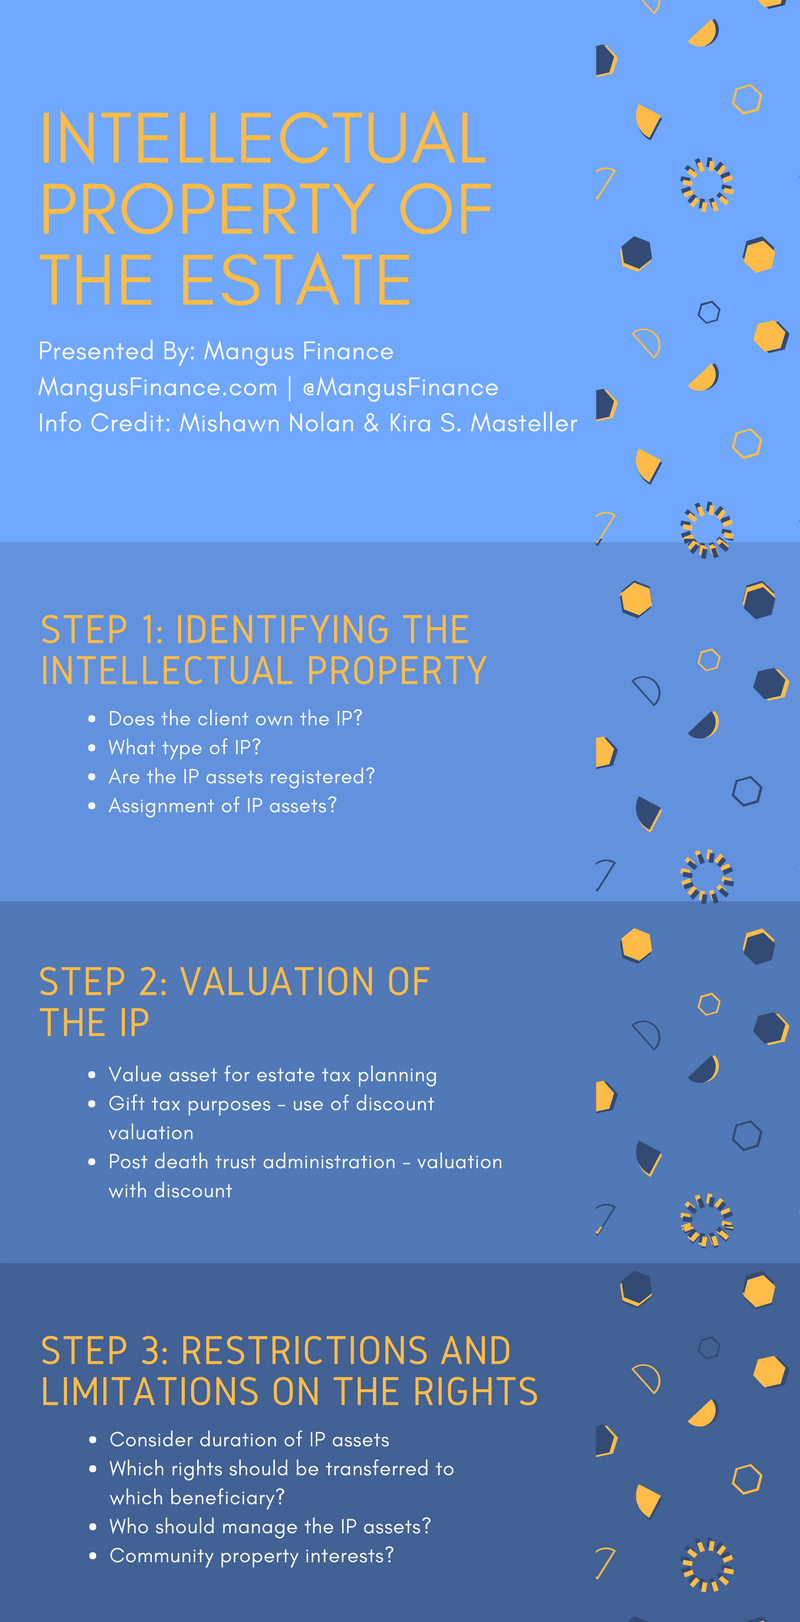 intellectual property of the estate infographic finance mangus financial advice assets tax post death trust administration